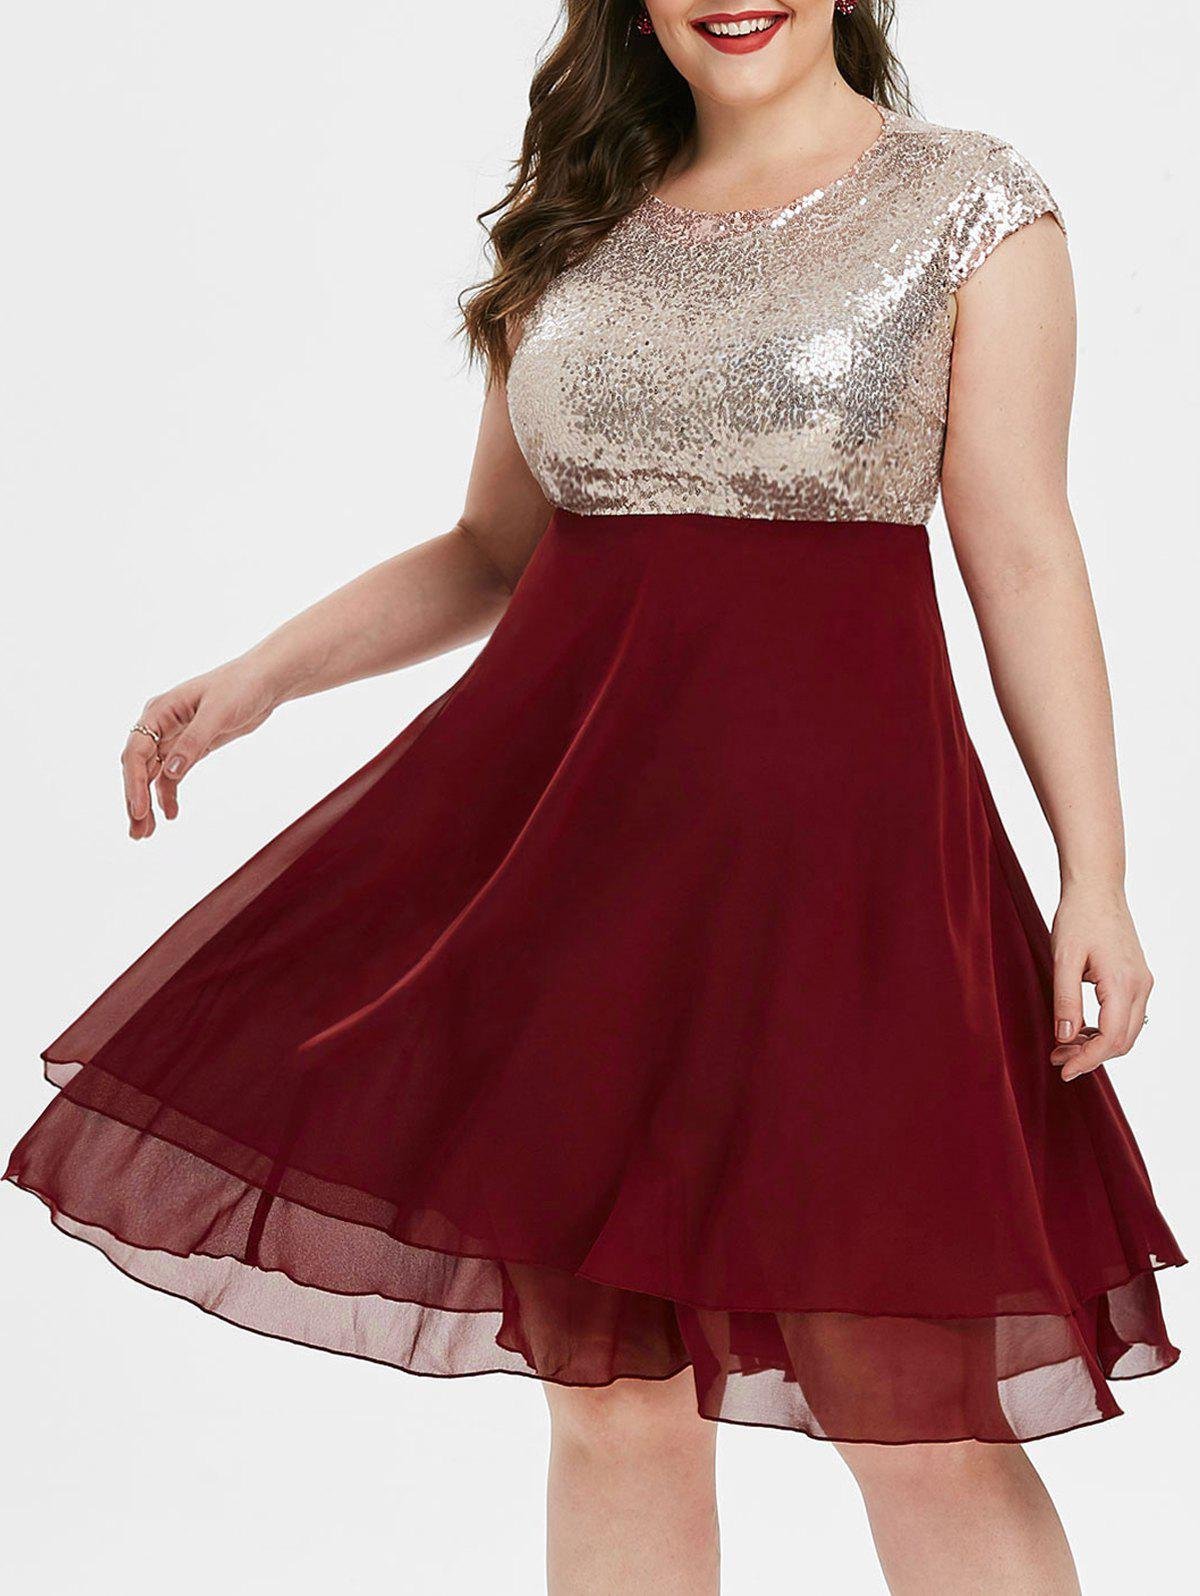 Fancy Cap Sleeve Chiffon Panel Sequined Plus Size Prom Dress